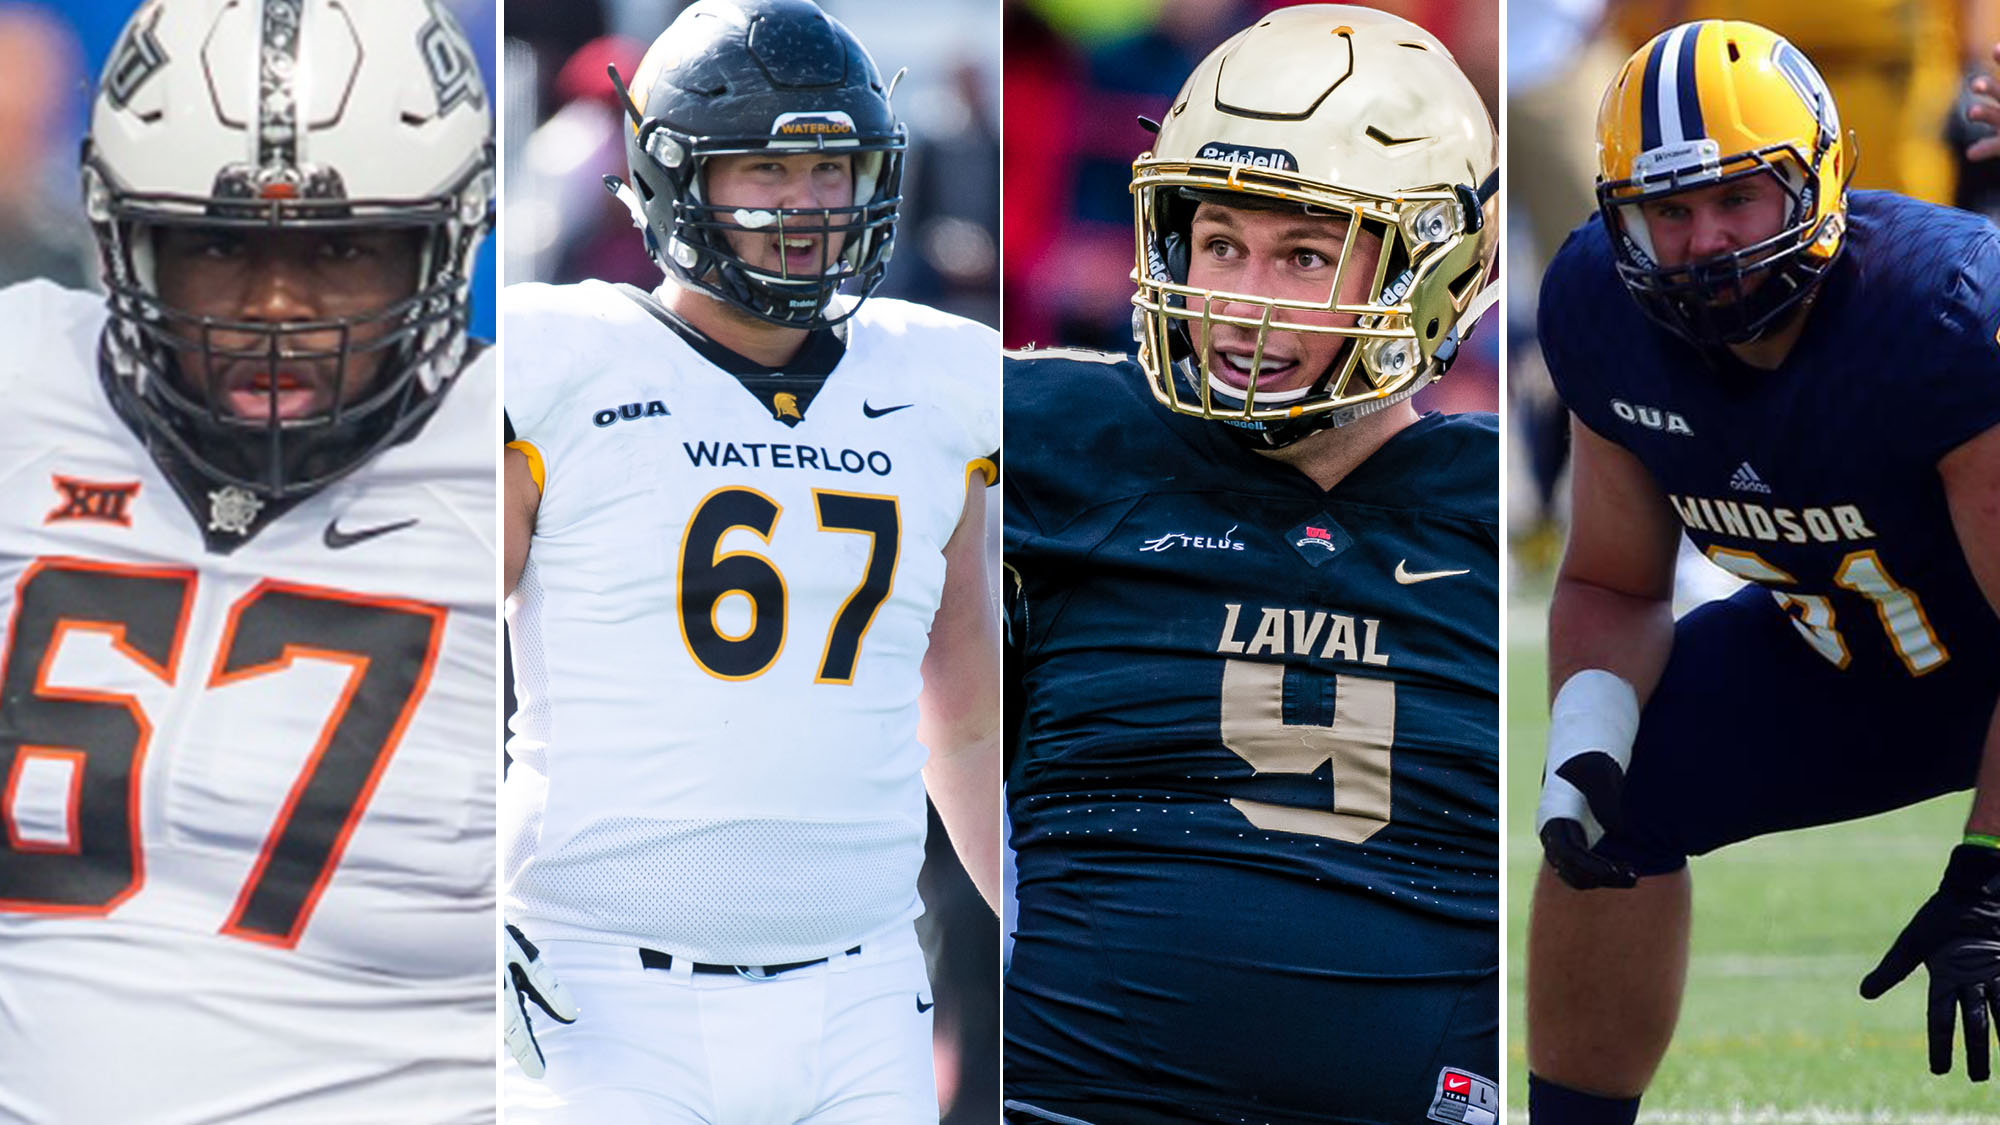 Top 4 2019 CFL Draft picks are national team alumni